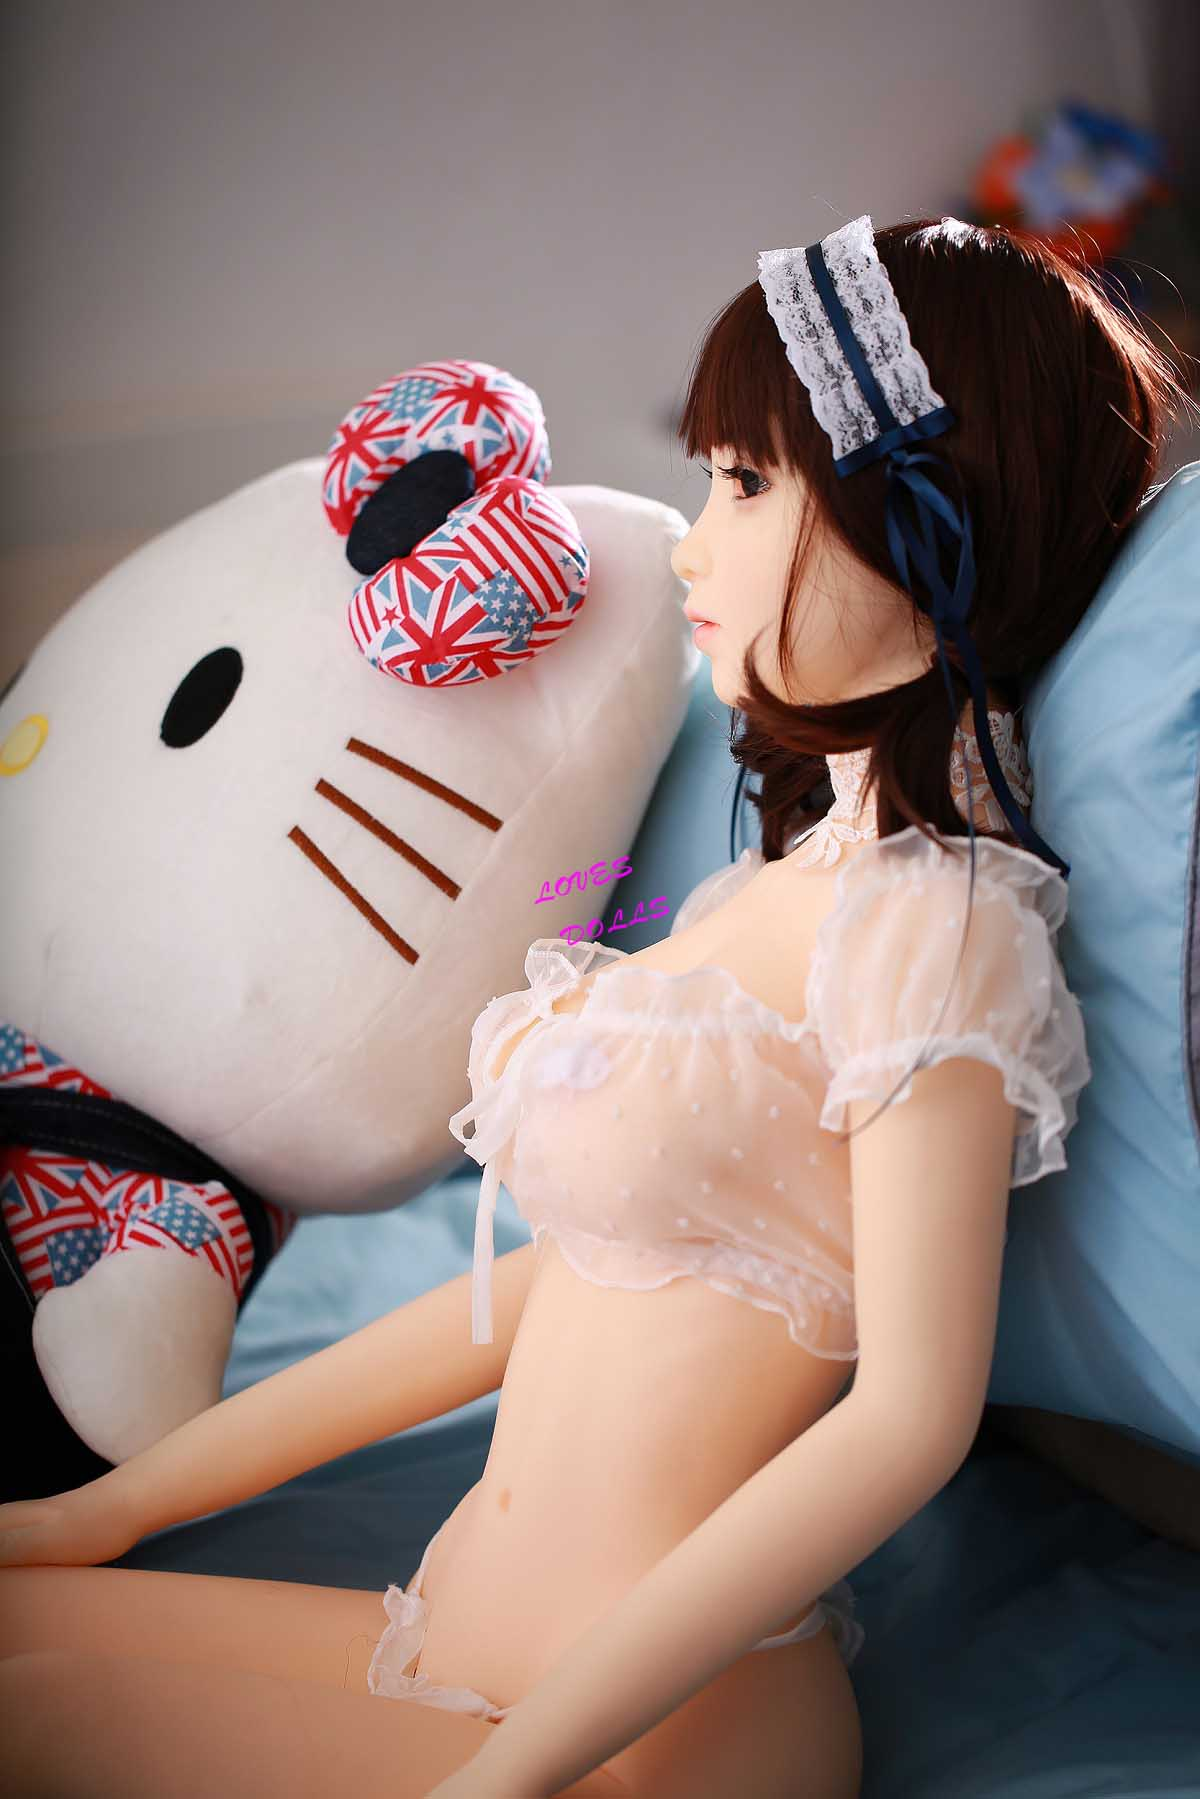 125cm(4.10ft) Super Busty Breasts And Ass Sex Doll With Beautiful Chubby Body Huge Bust Plump Booty Kelt Milf With White Smooth Skin Sexy Underwear True To Nature Pussy Vagina Anal Oral love doll sex doll YW-100